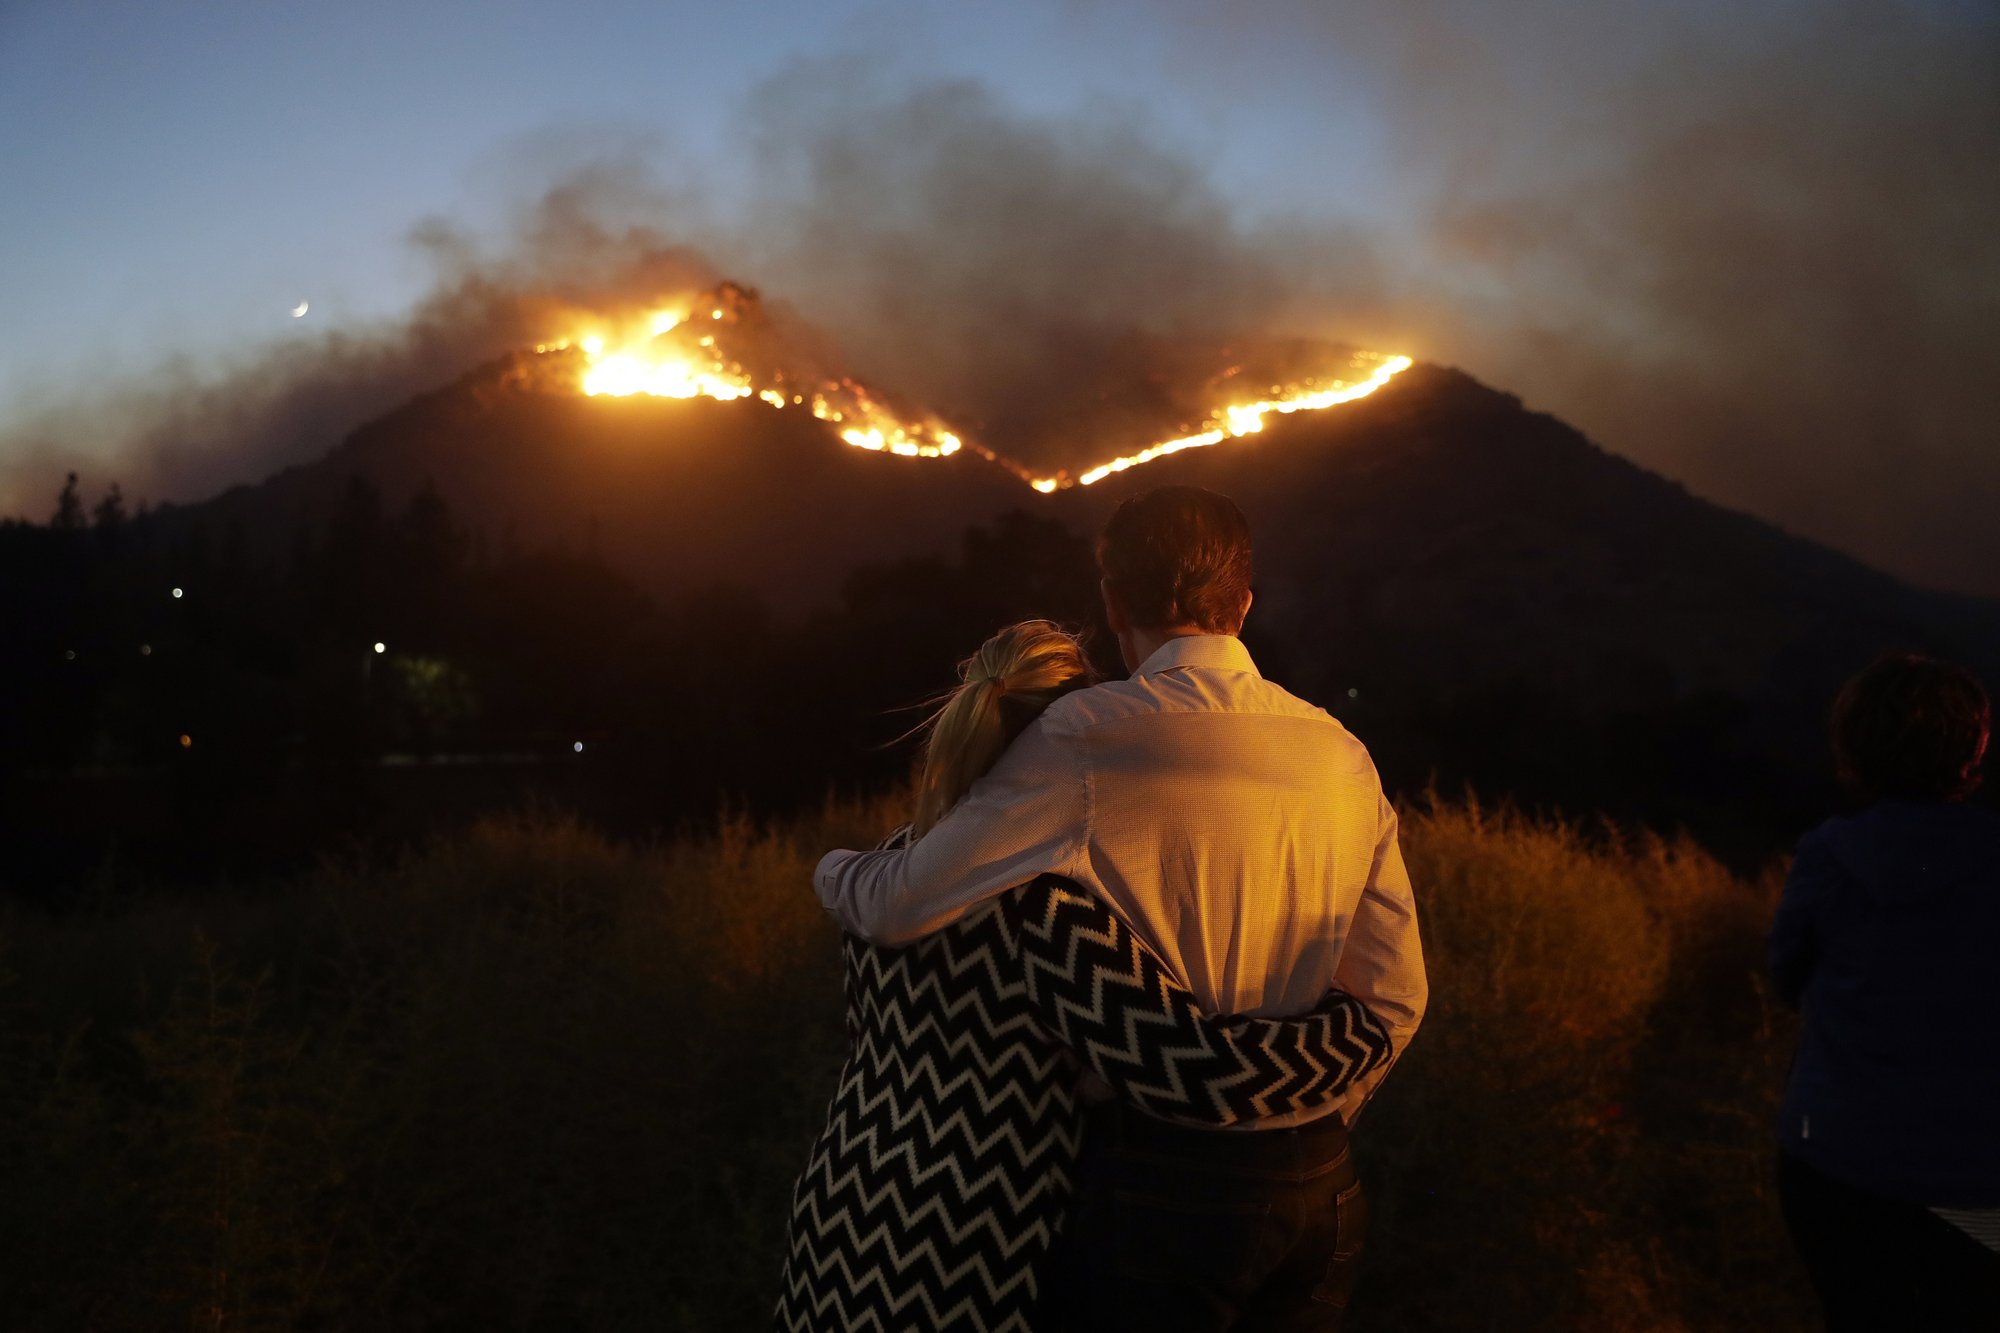 Insurance claims from deadly California wildfires top $11.4B